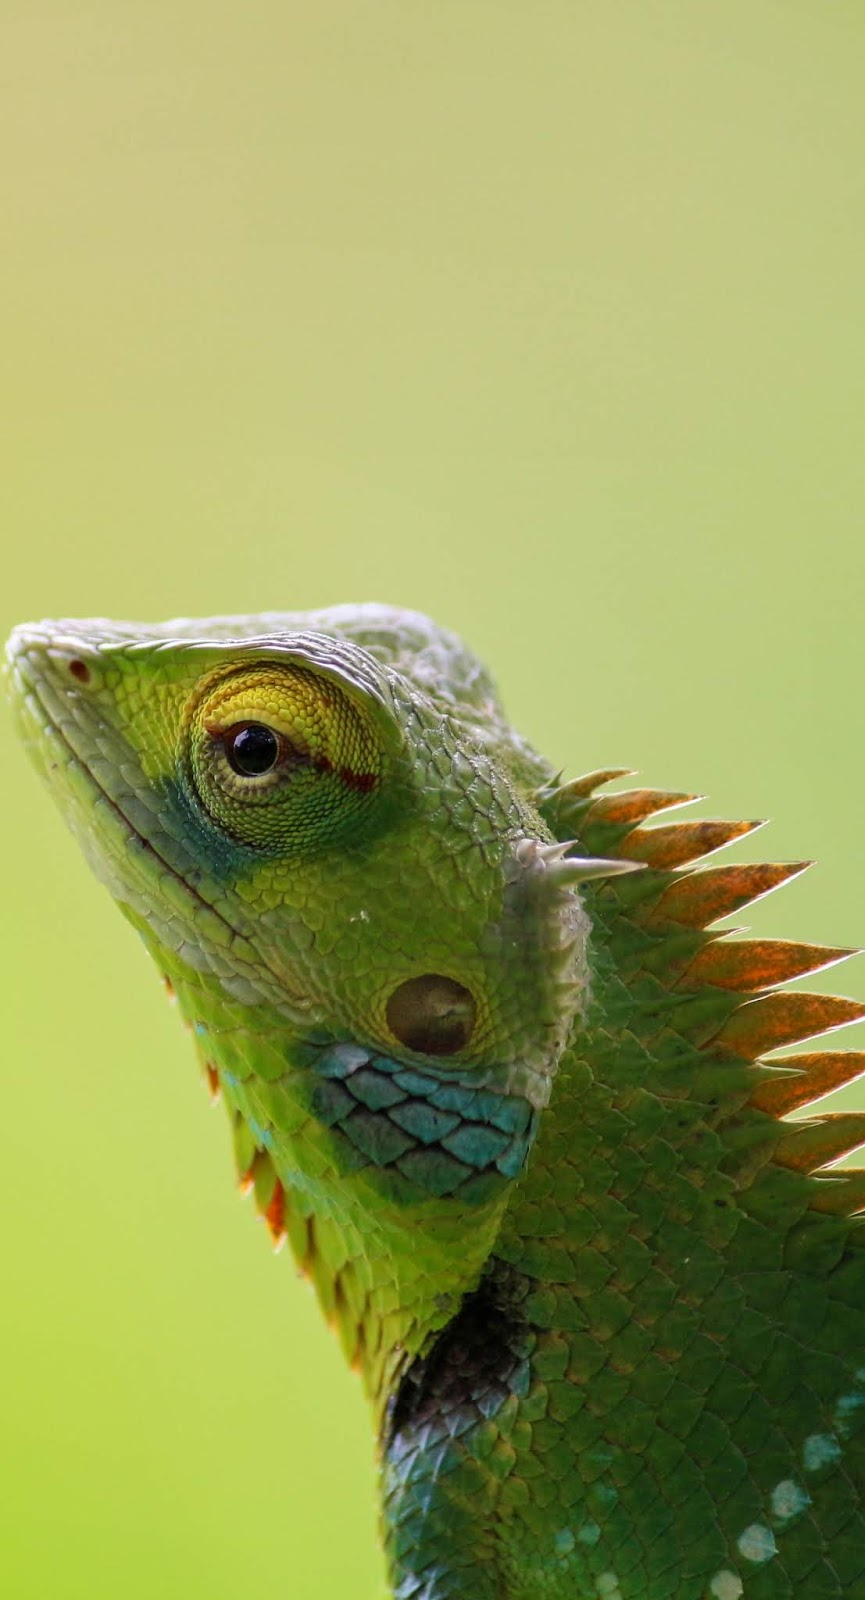 A chameleon up close.